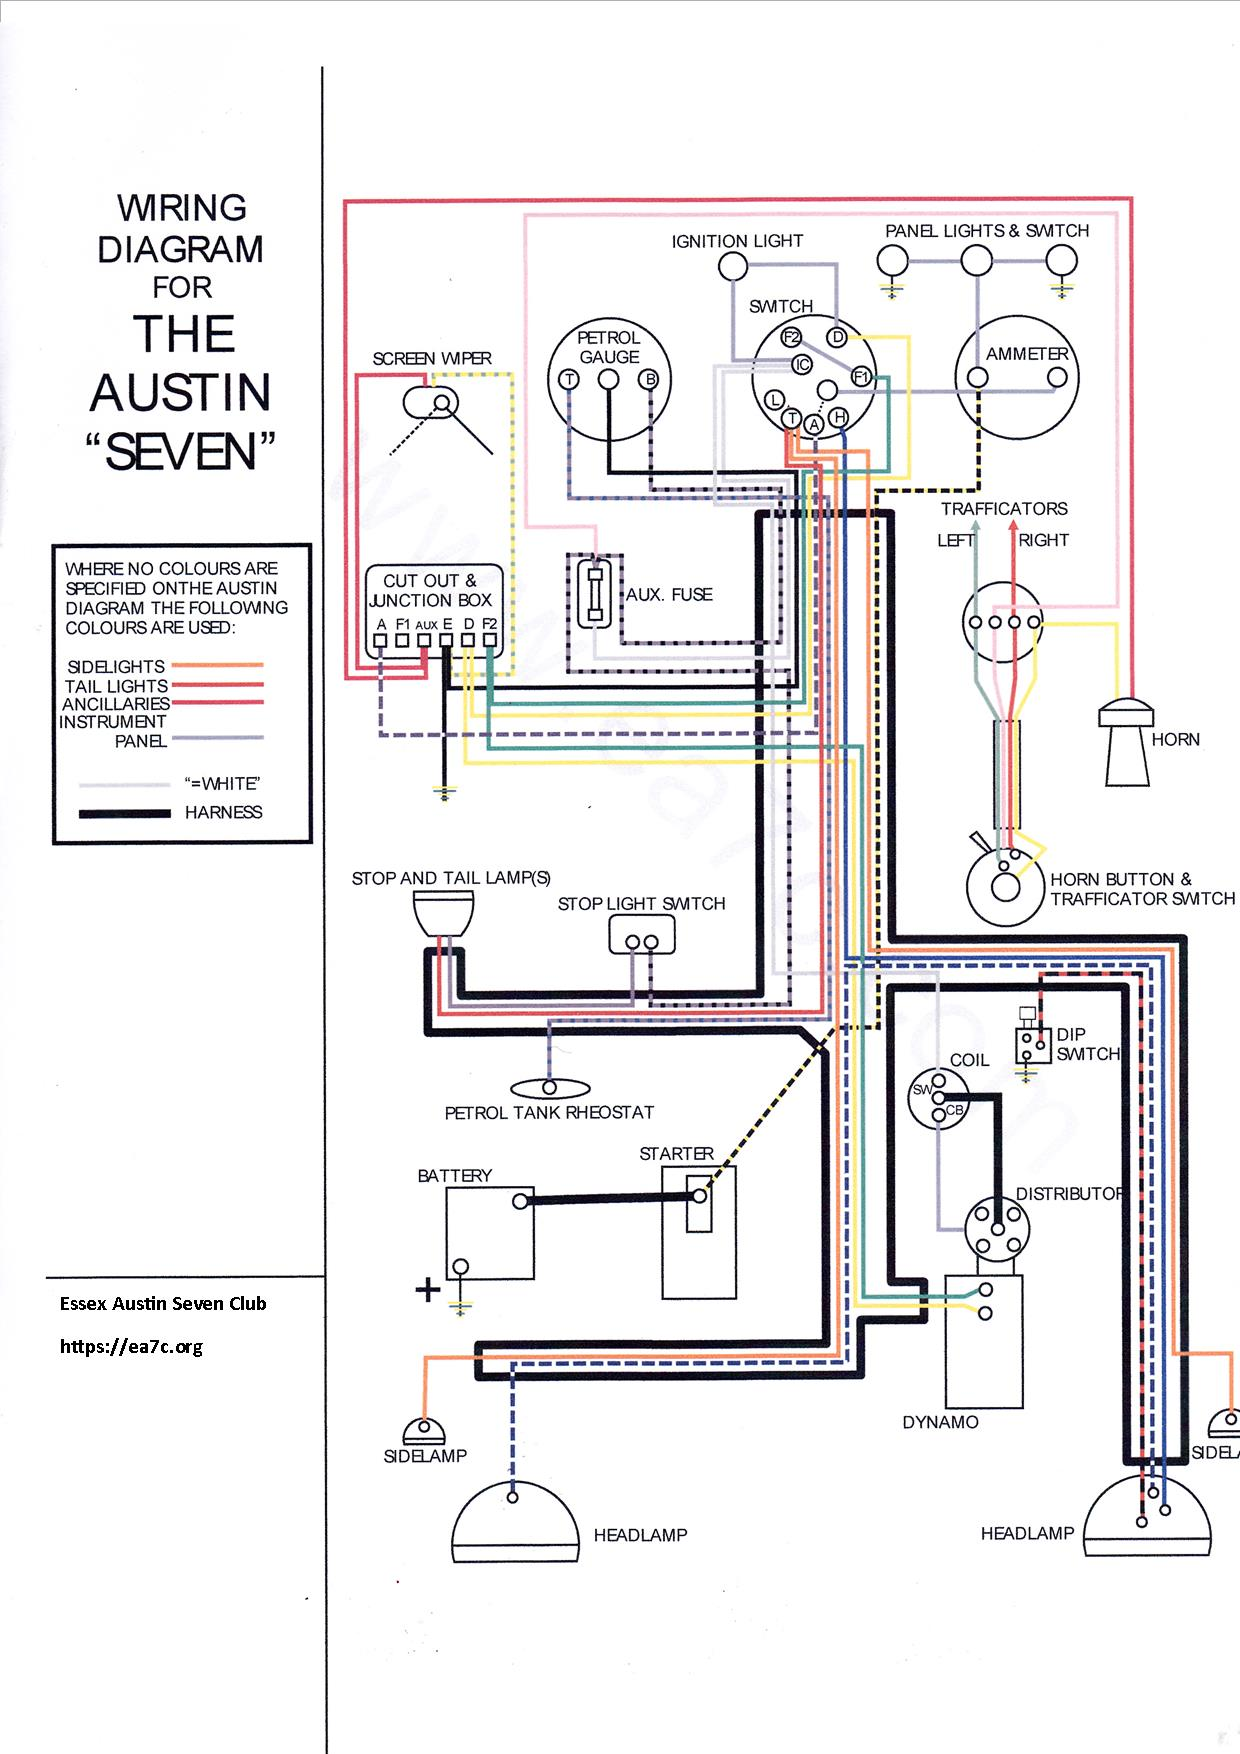 5915 fms audio wiring diagram mct006g2 b - trusted wiring diagrams   wiring  library  wiring library